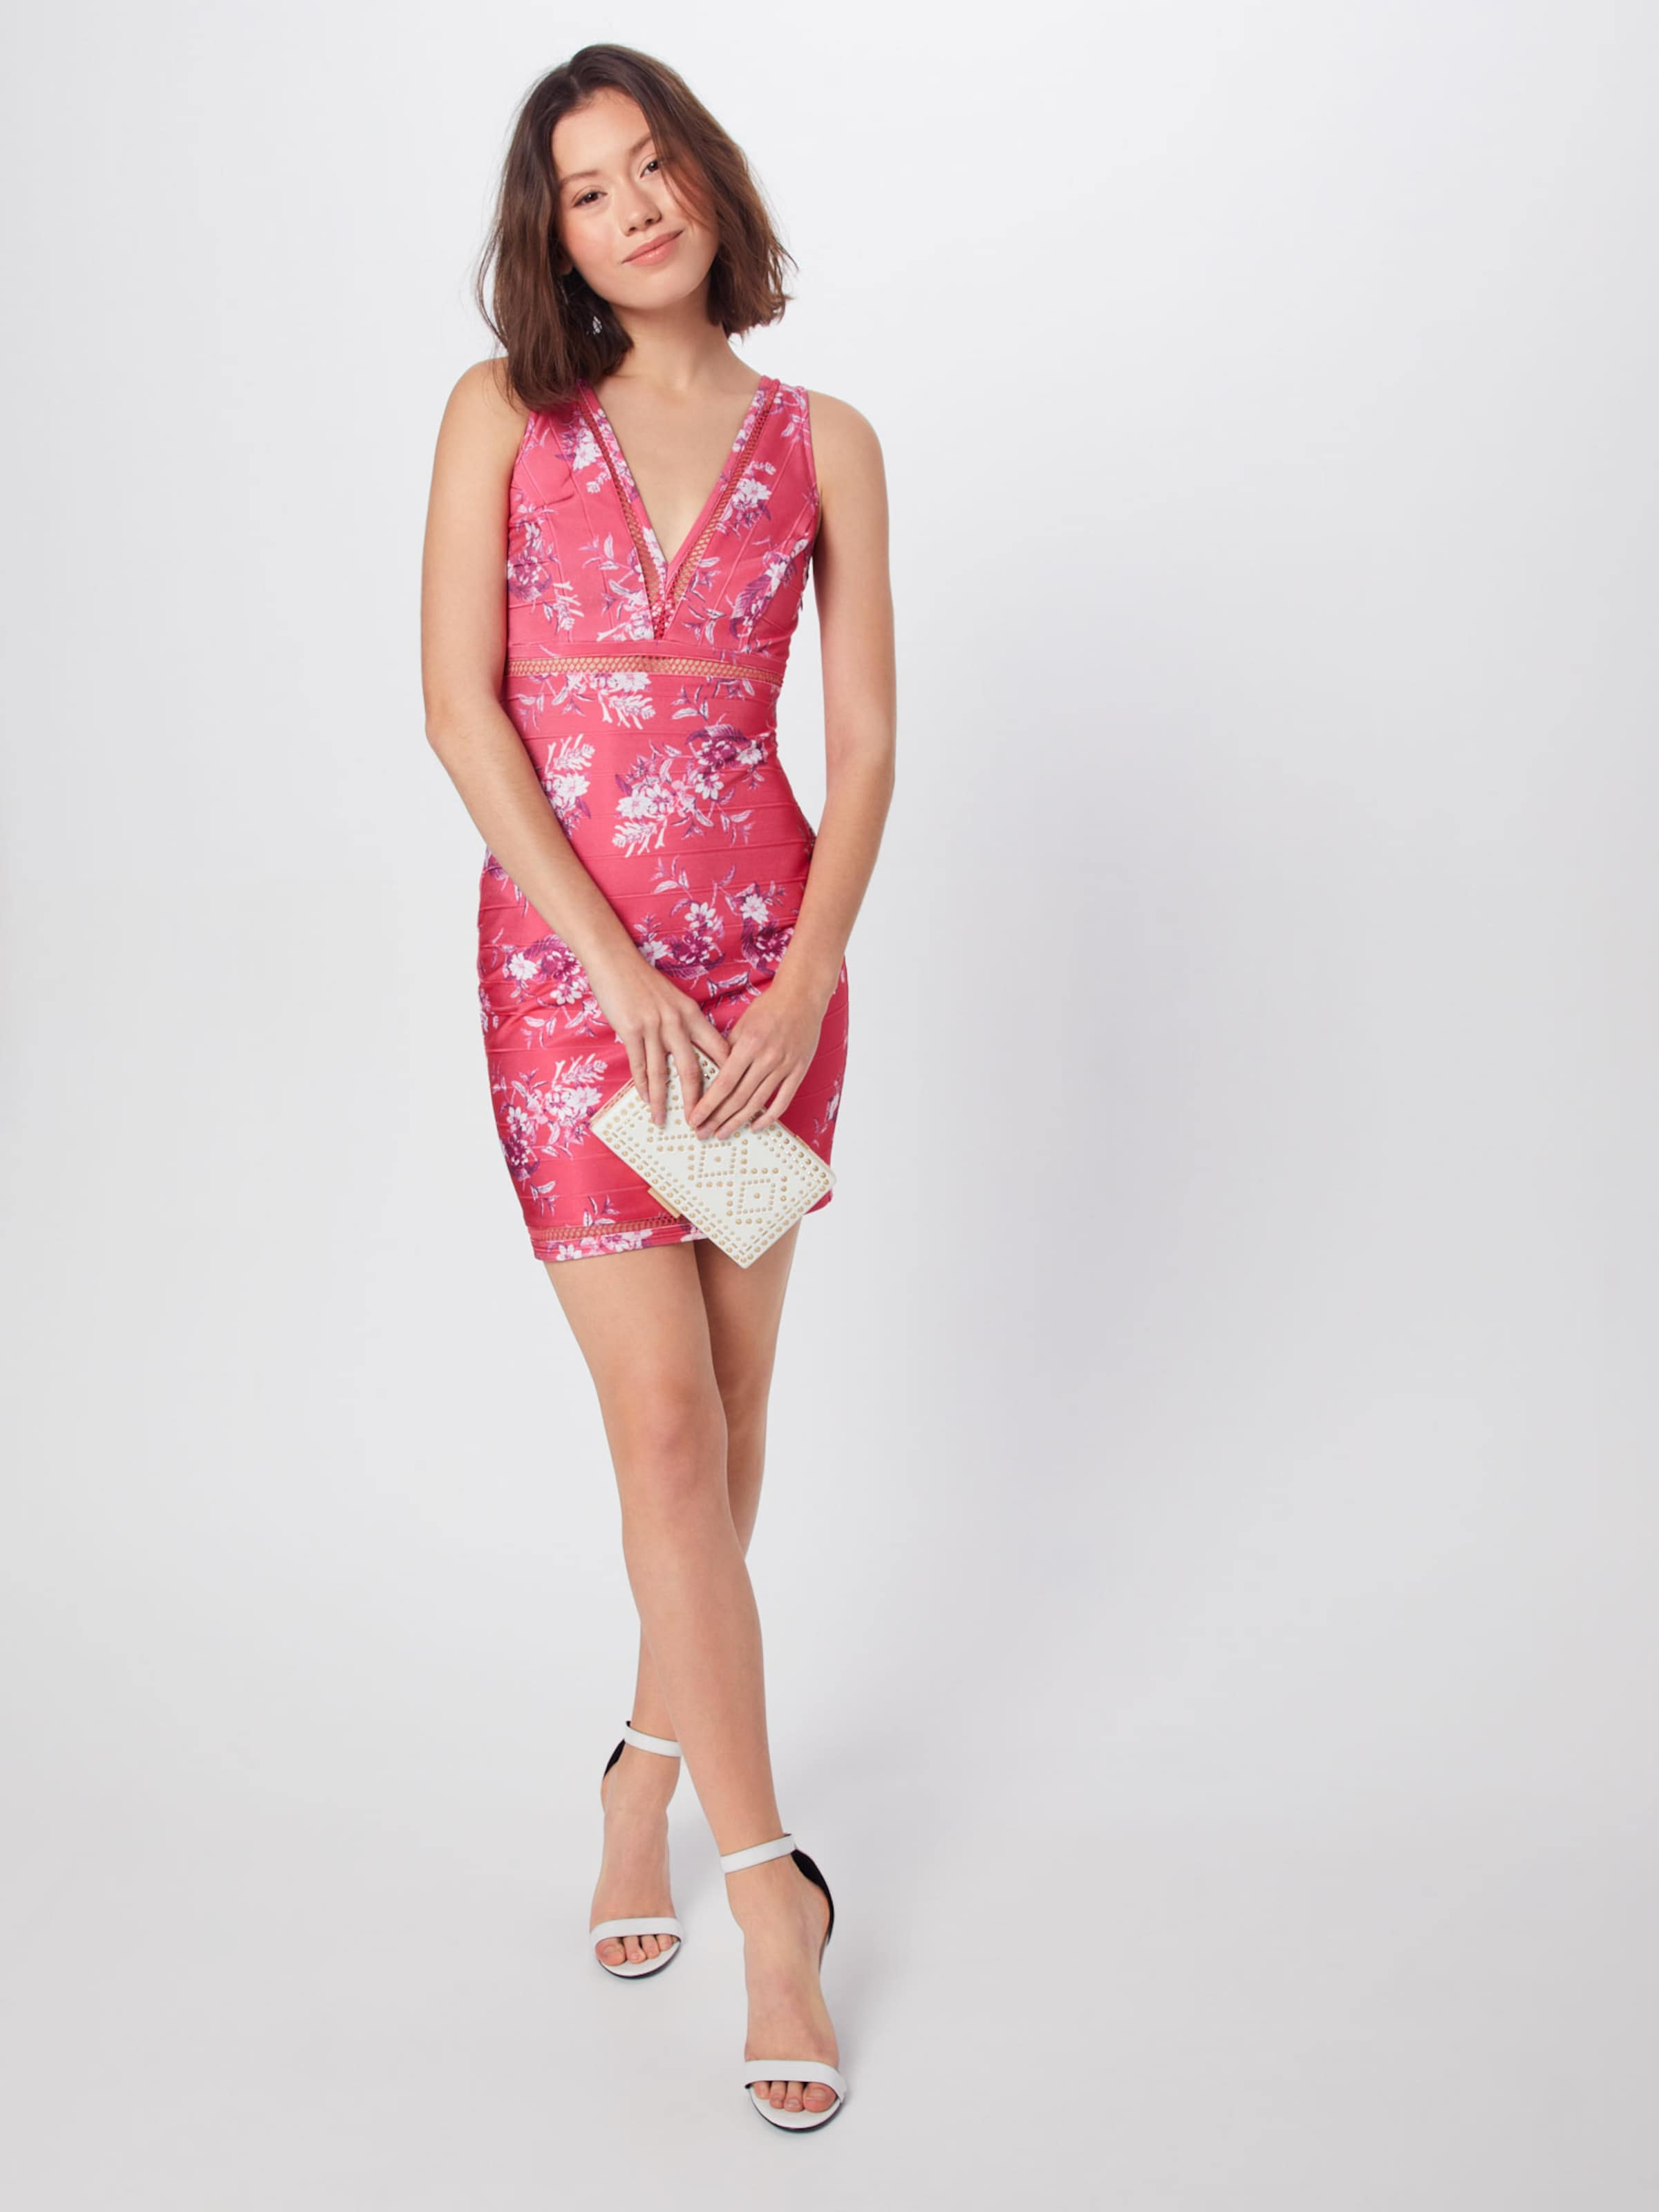 MischfarbenPink MischfarbenPink 'malica' 'malica' Guess Guess Kleid In In Kleid T1J3FlcuK